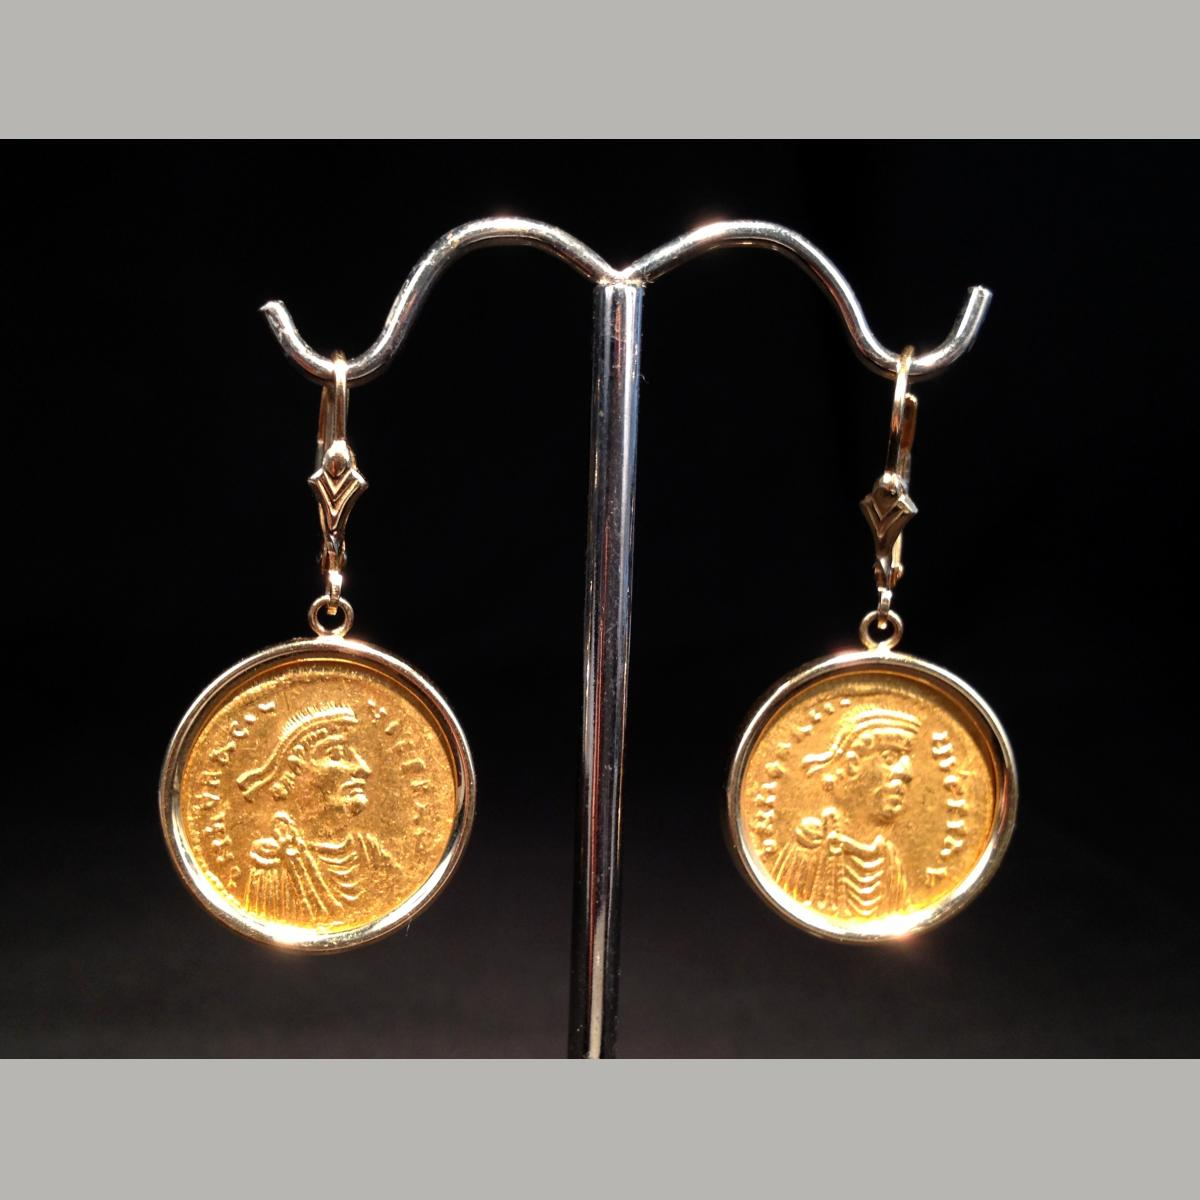 Ancient Byzantine Gold Coin Earrings. Blue Band Watches. Fake Wedding Rings. Delicate Beads. Elephant Bracelet. Corundum Rings. Rondelle Necklace. Curb Chains. Chain Link Bracelet